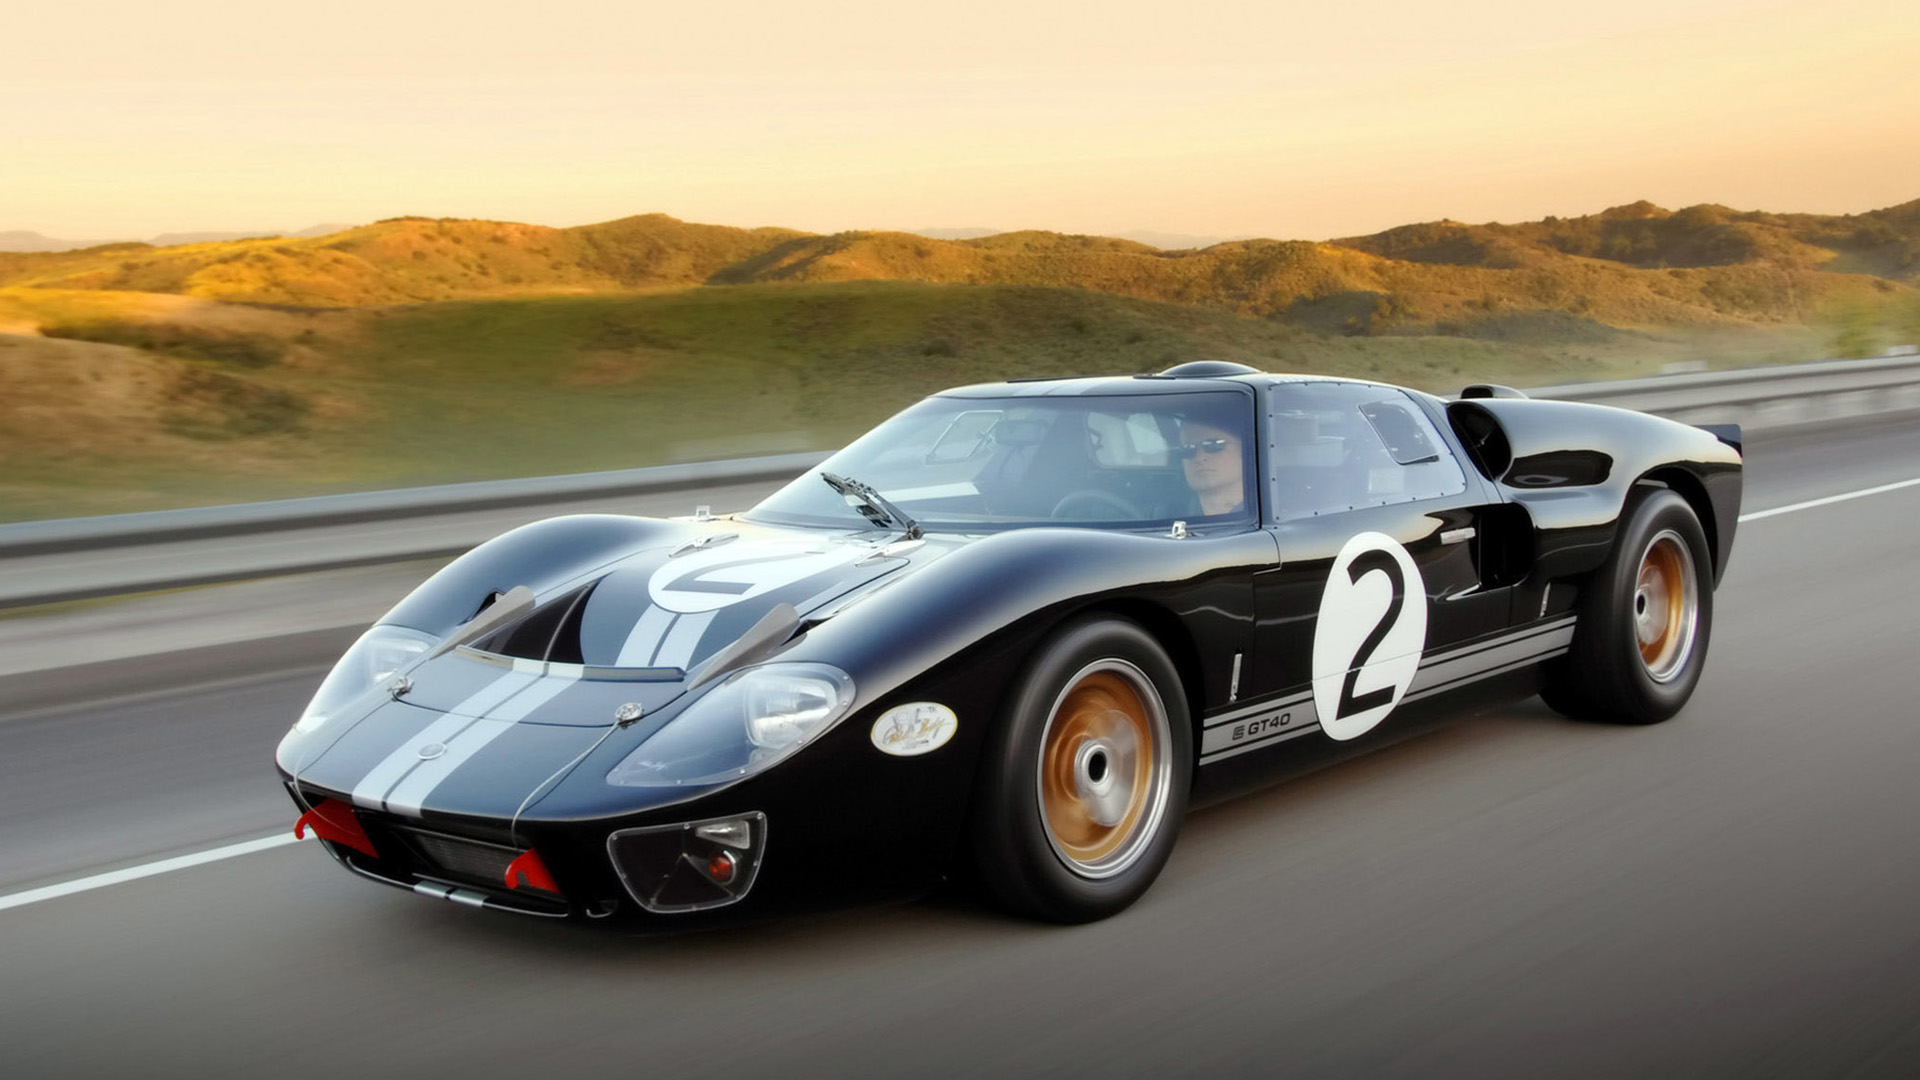 gt40 85th commemorative 2008 gt40 85th commemorative 2008 shelby gt40 1920x1080